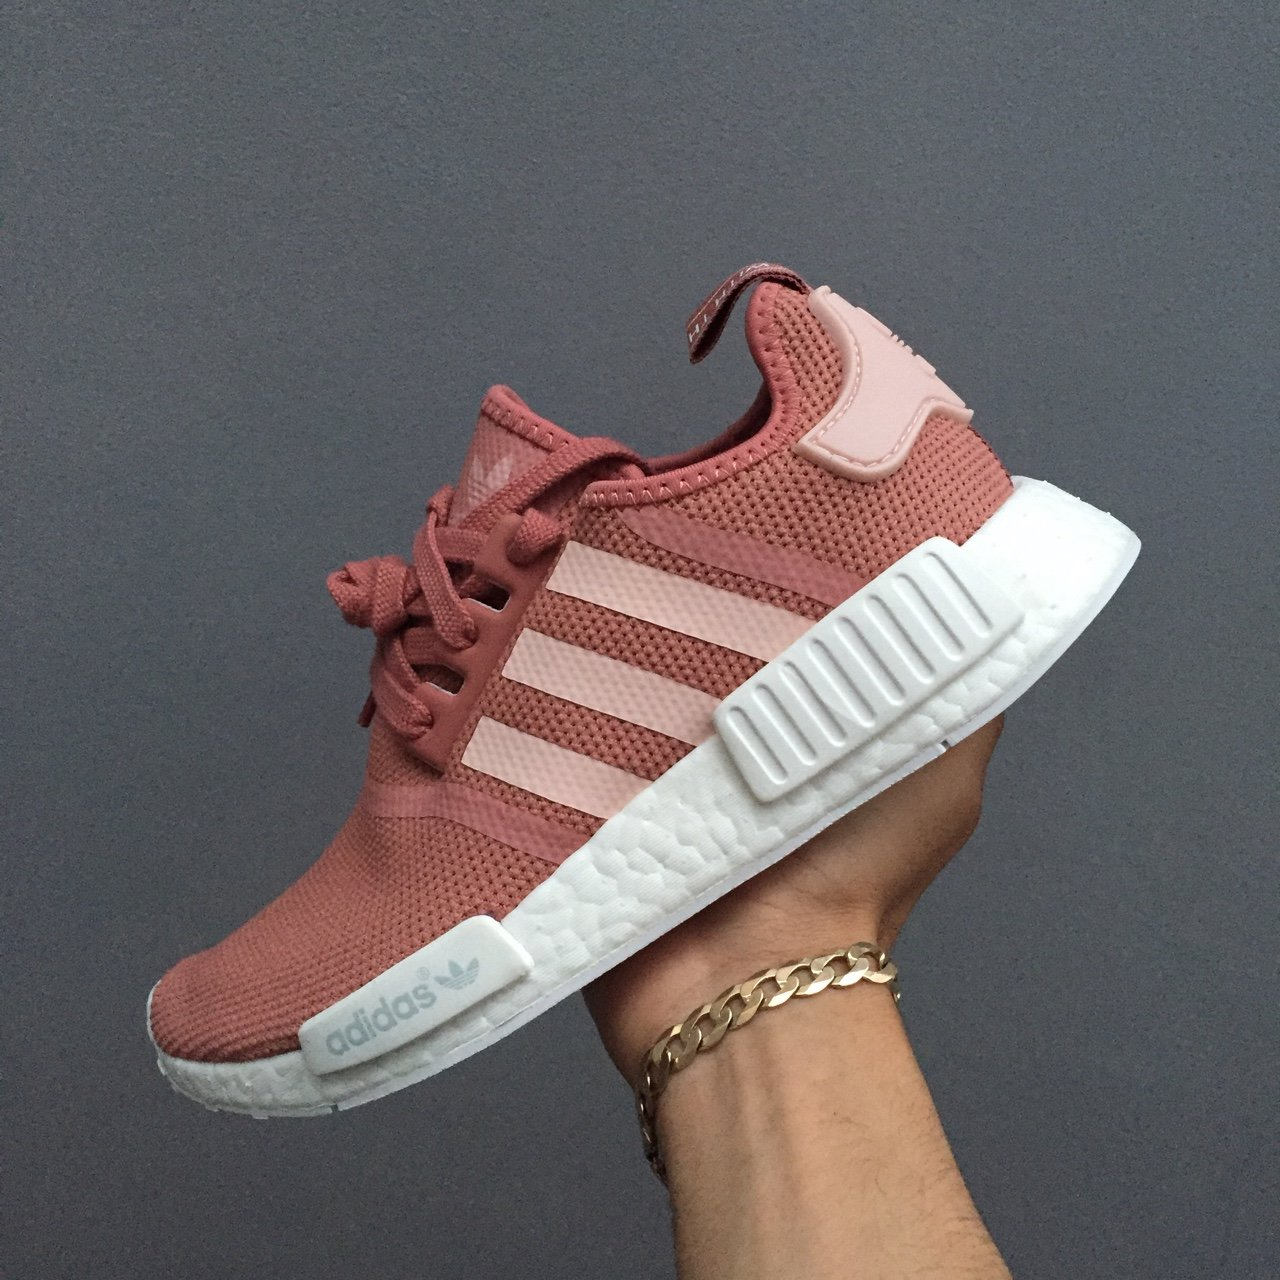 c463e86c63a Adidas NMD Raw pink Restock. Brand new with box ONLY the is - Depop